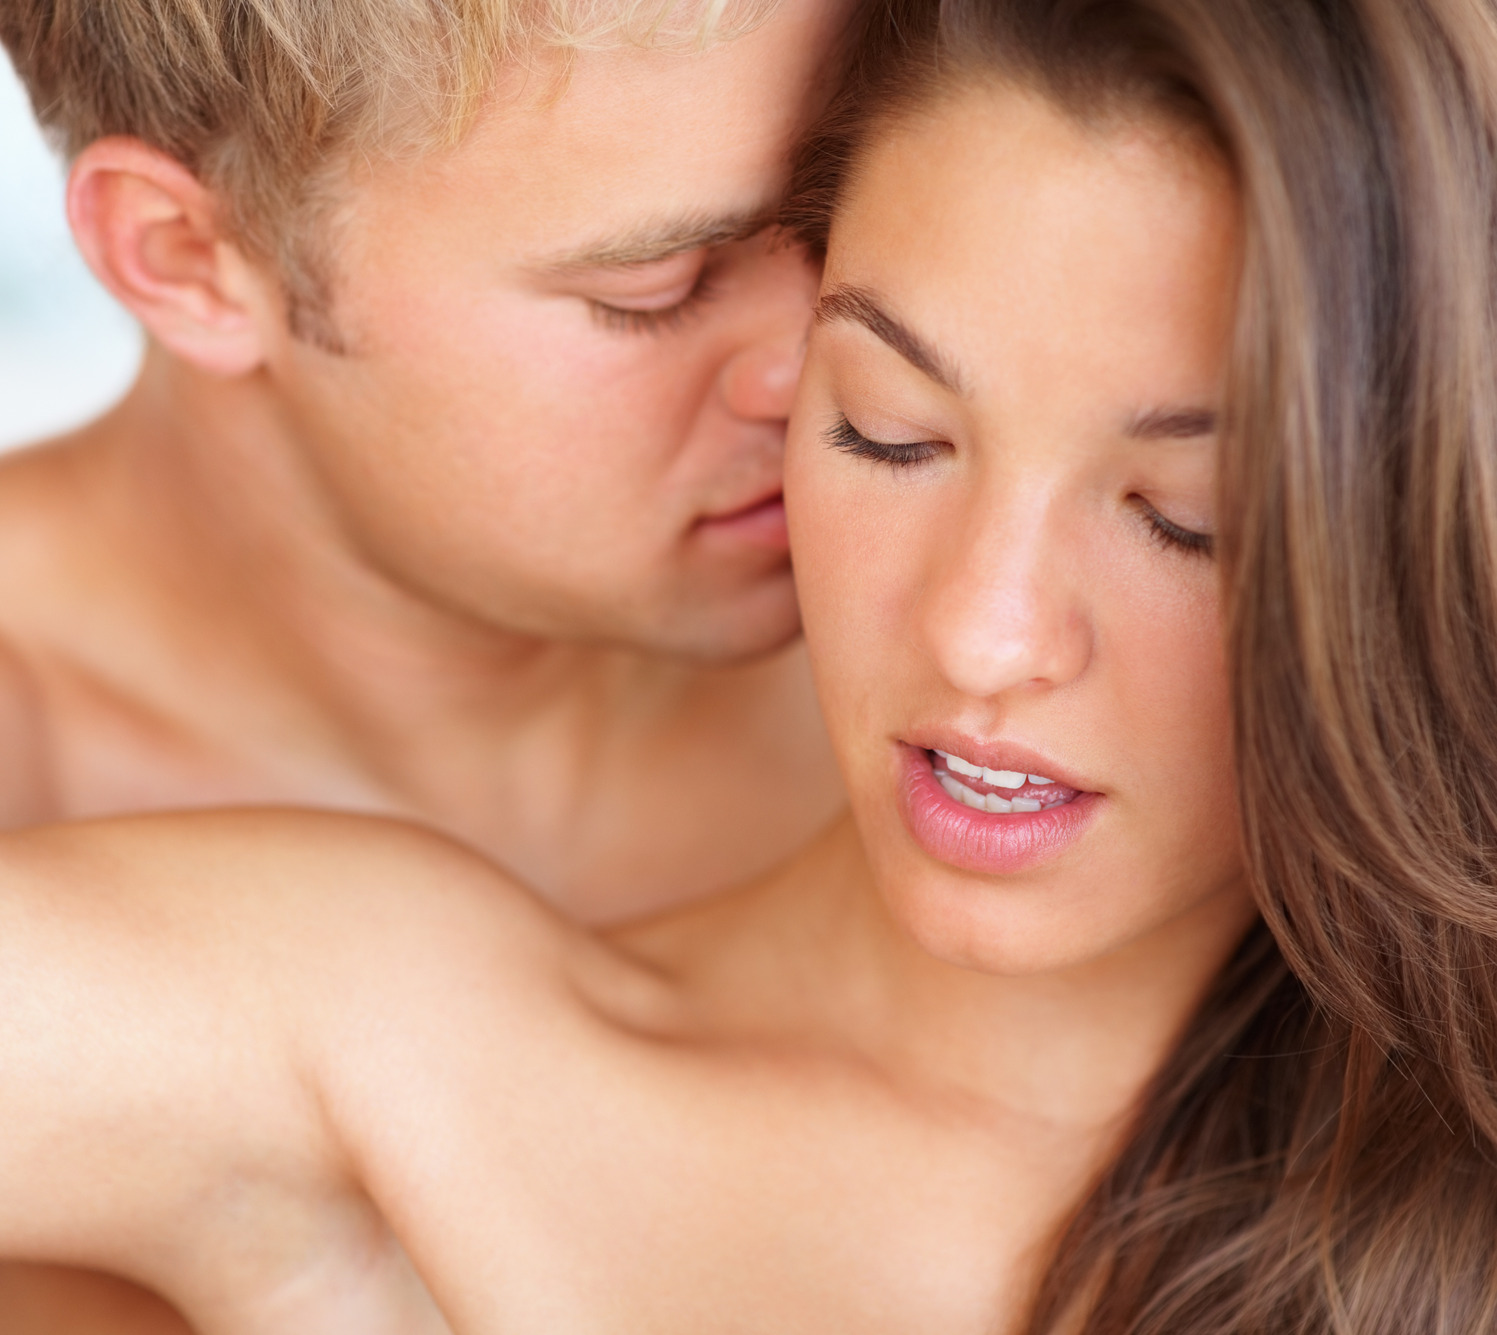 Kissing a man during sex